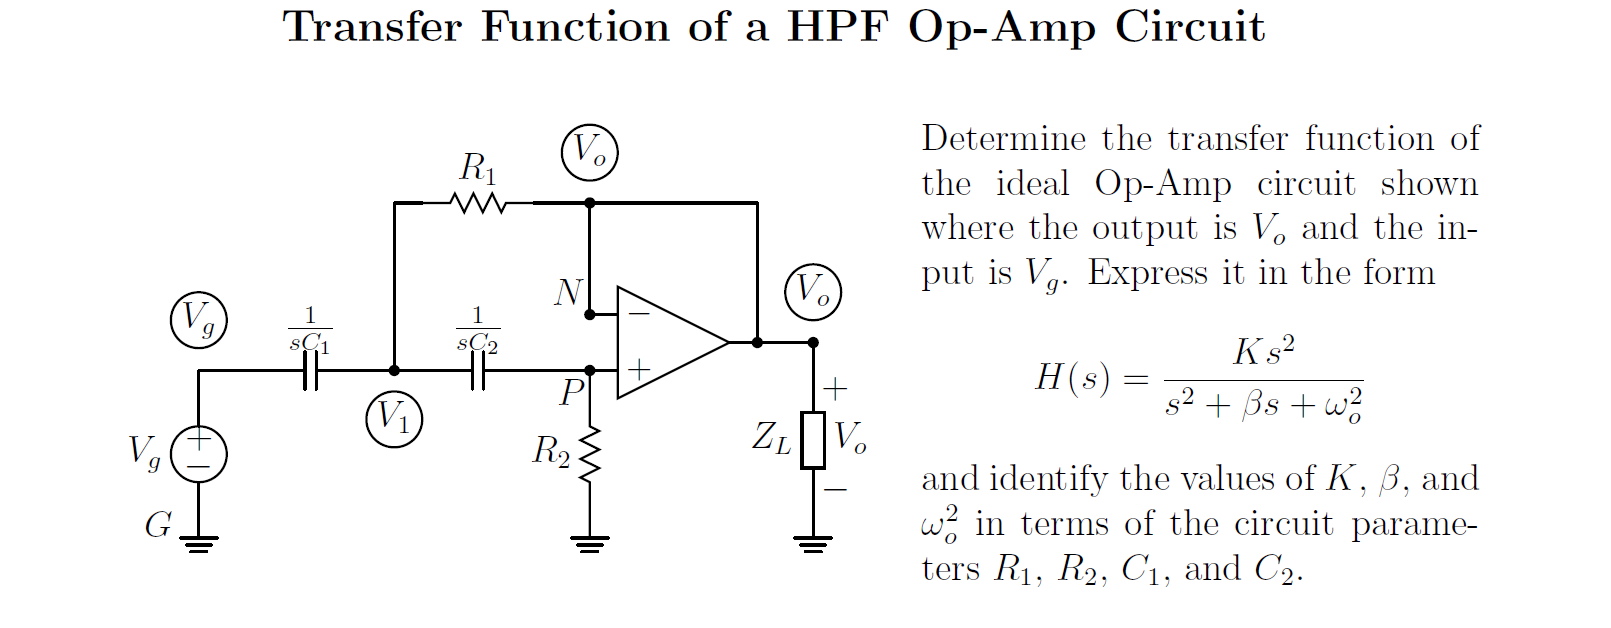 Op Amp How To Solve The Transfer Function For This Opamp Circuit Easily Tuned Notch Filter Diagram Tradeoficcom Solved Of A Hpf Determin Chegg Com